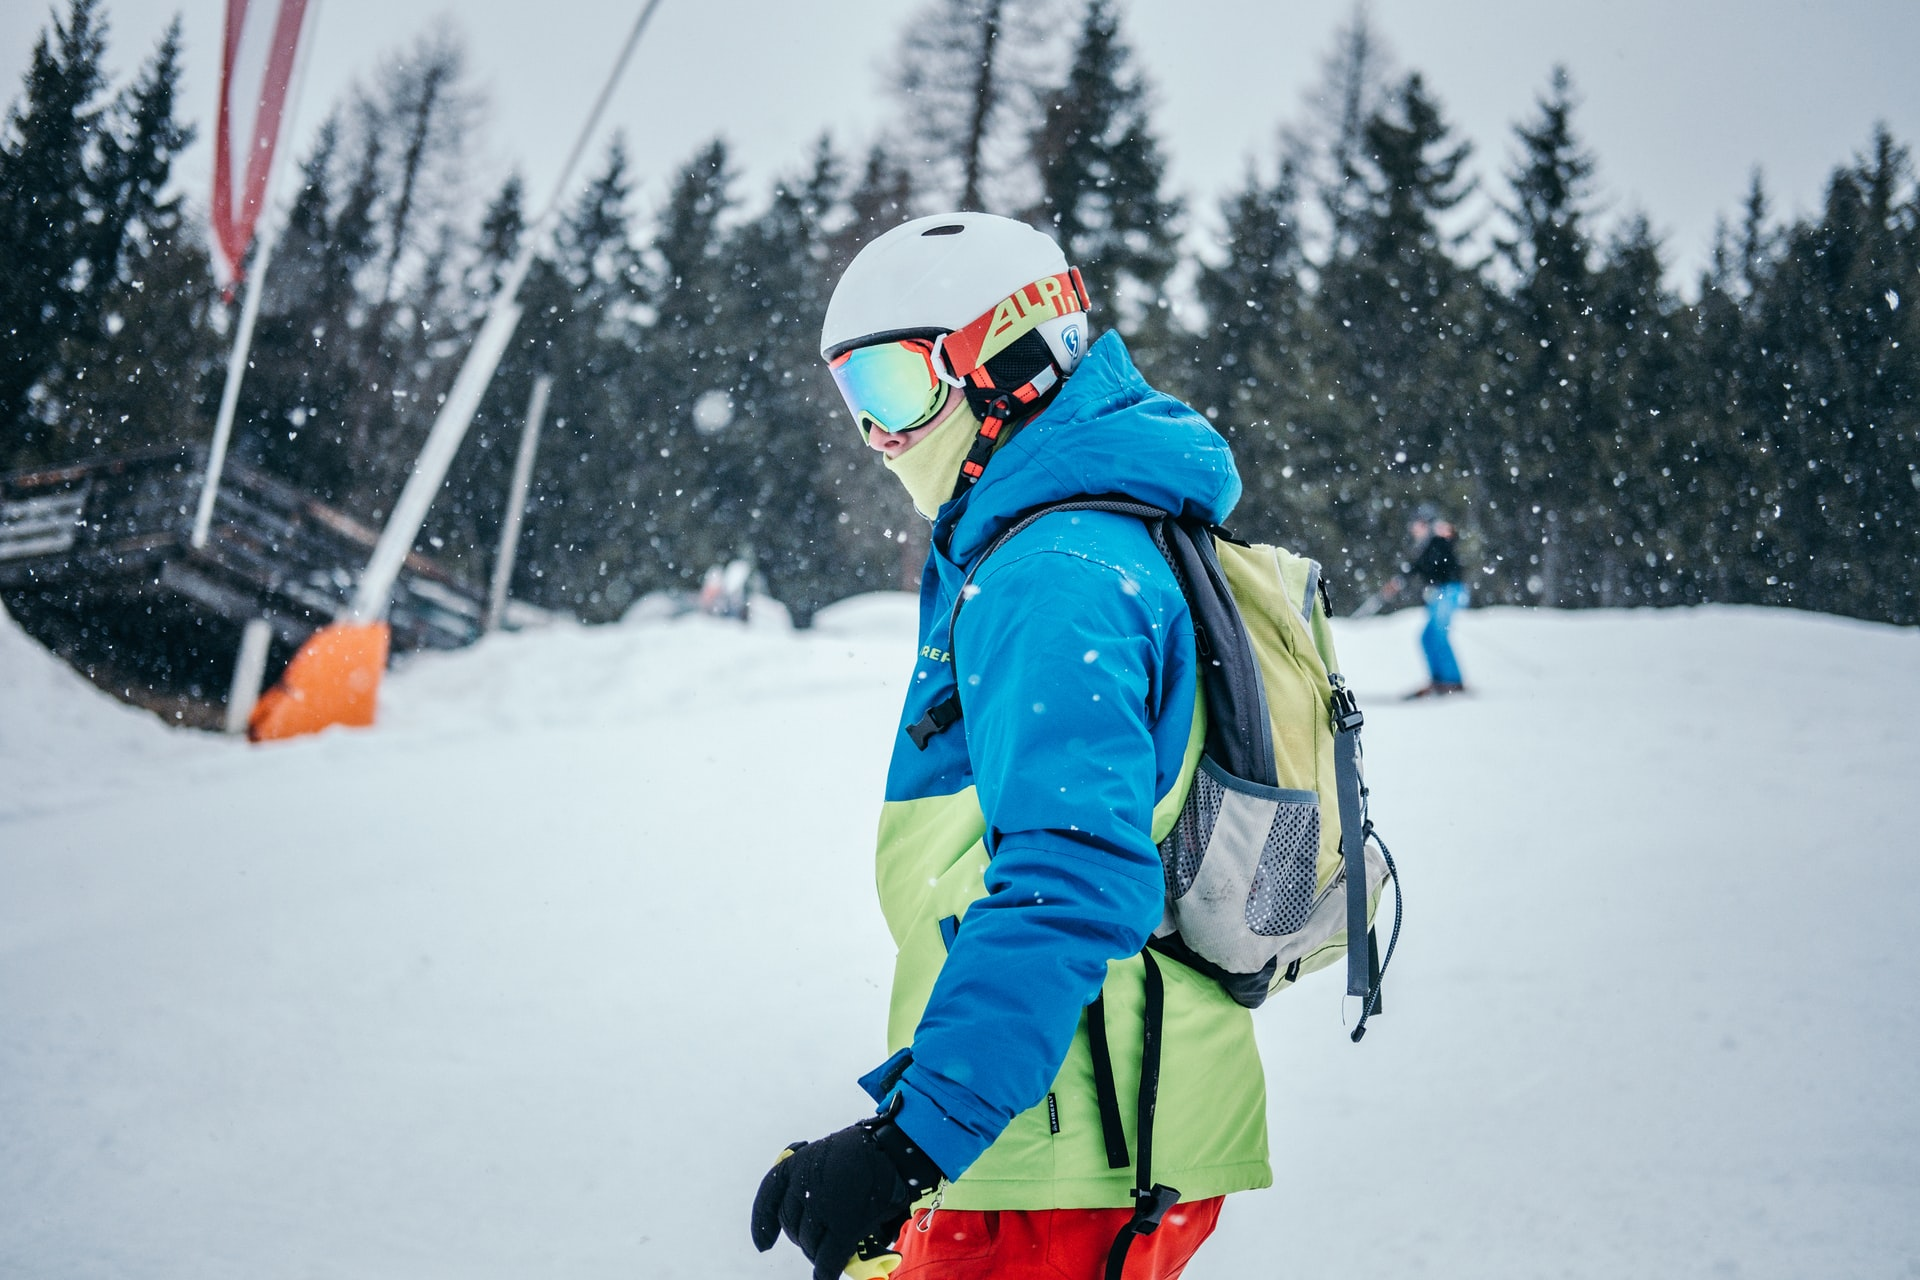 person-in-ski-gear-standing-in-snow-in-front-of-forest-up-a-mountain-skiing-ski-season-packing-list